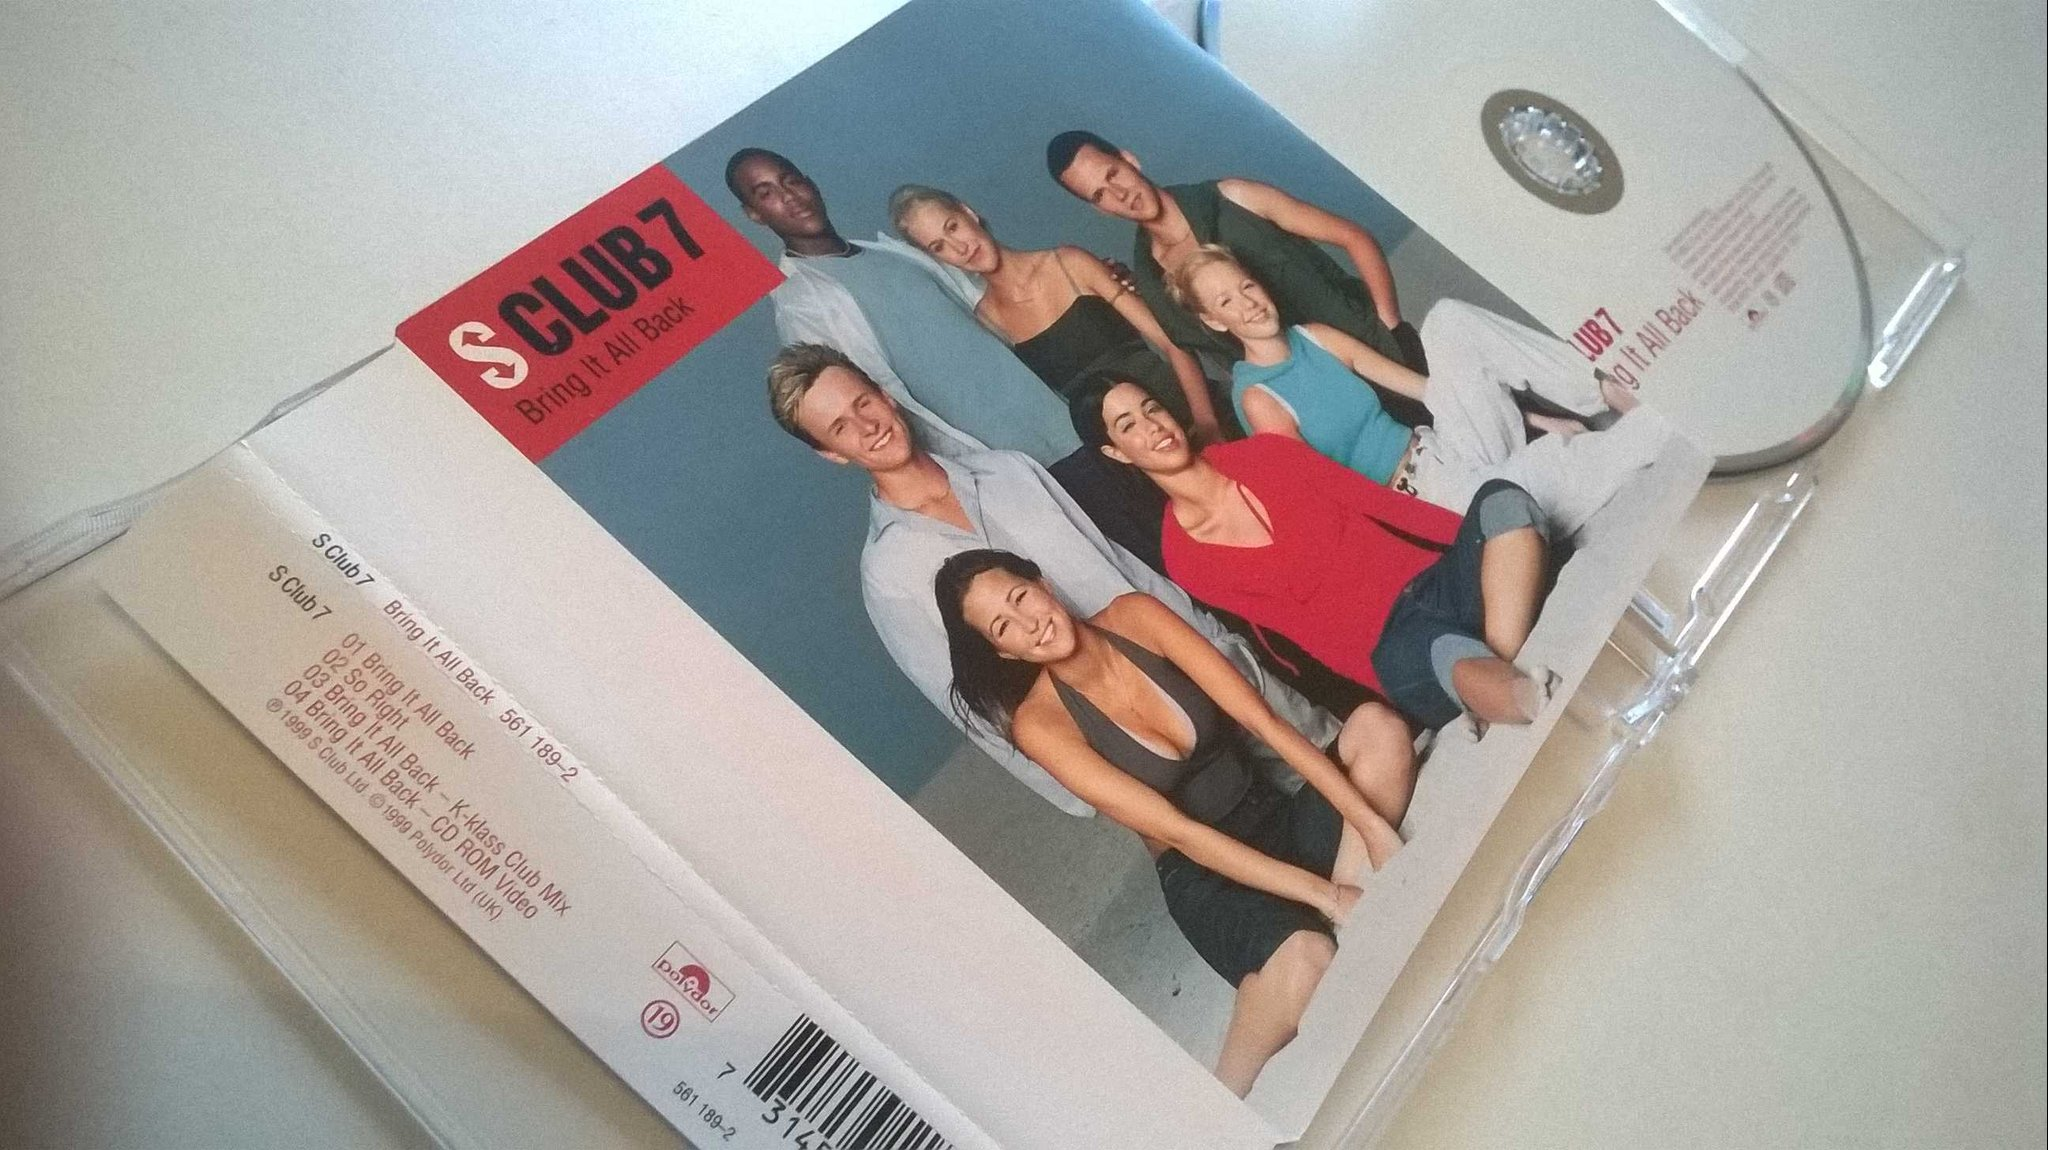 S Club 7 ?- Bring It All Back, CD, Maxi-Single